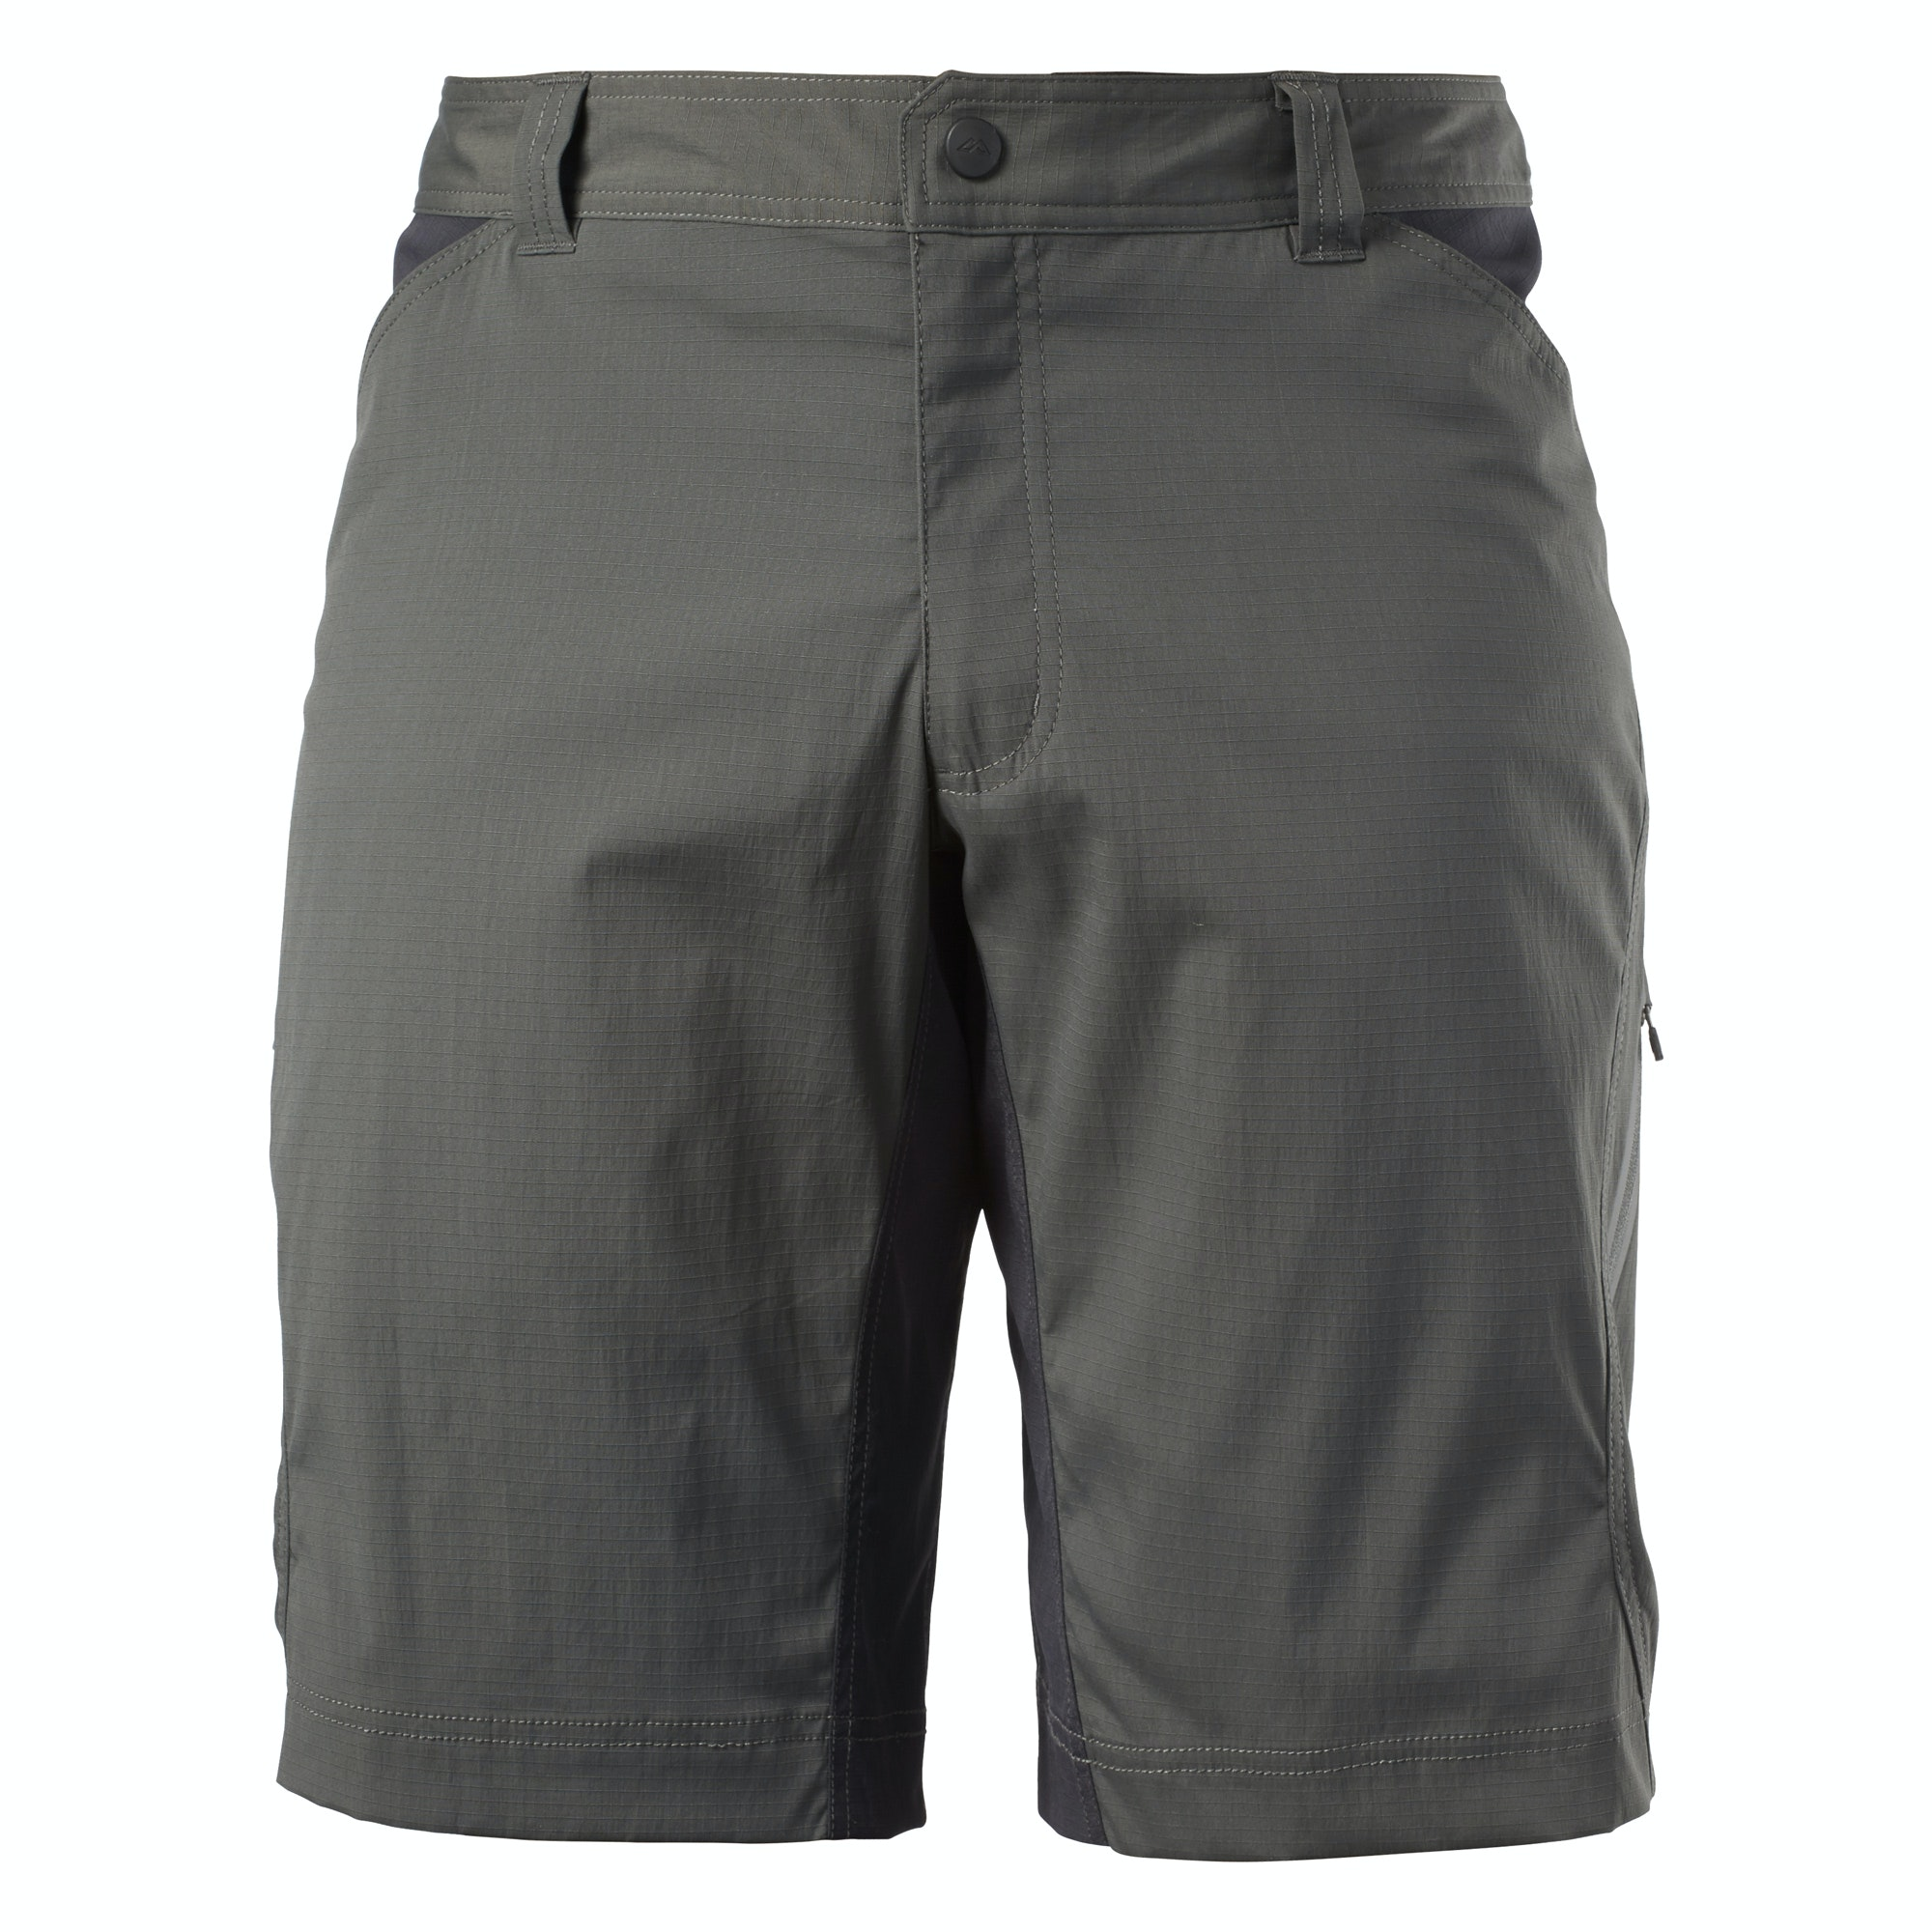 thumbnail 19 - NEW-Kathmandu-Aklo-Men-039-s-Walking-Hiking-Travel-Shorts-Pants-UPF-50-Protection